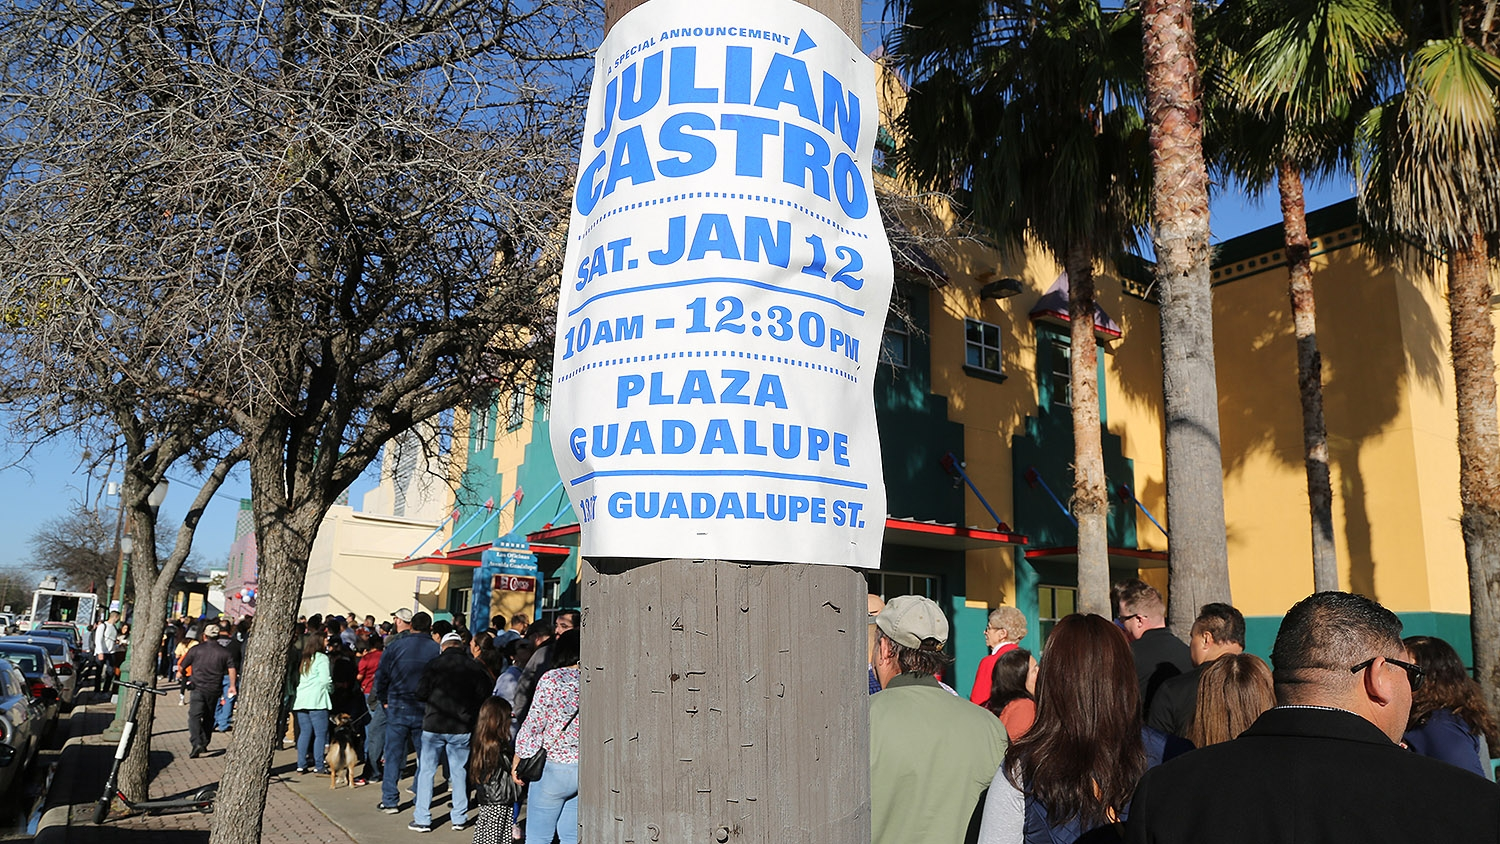 Supporters of Julián Castro wait to enter Plaza Guadalupe Saturday morning when Castro announced he's running for president of the United States. Photo: Ben Olivo | Heron